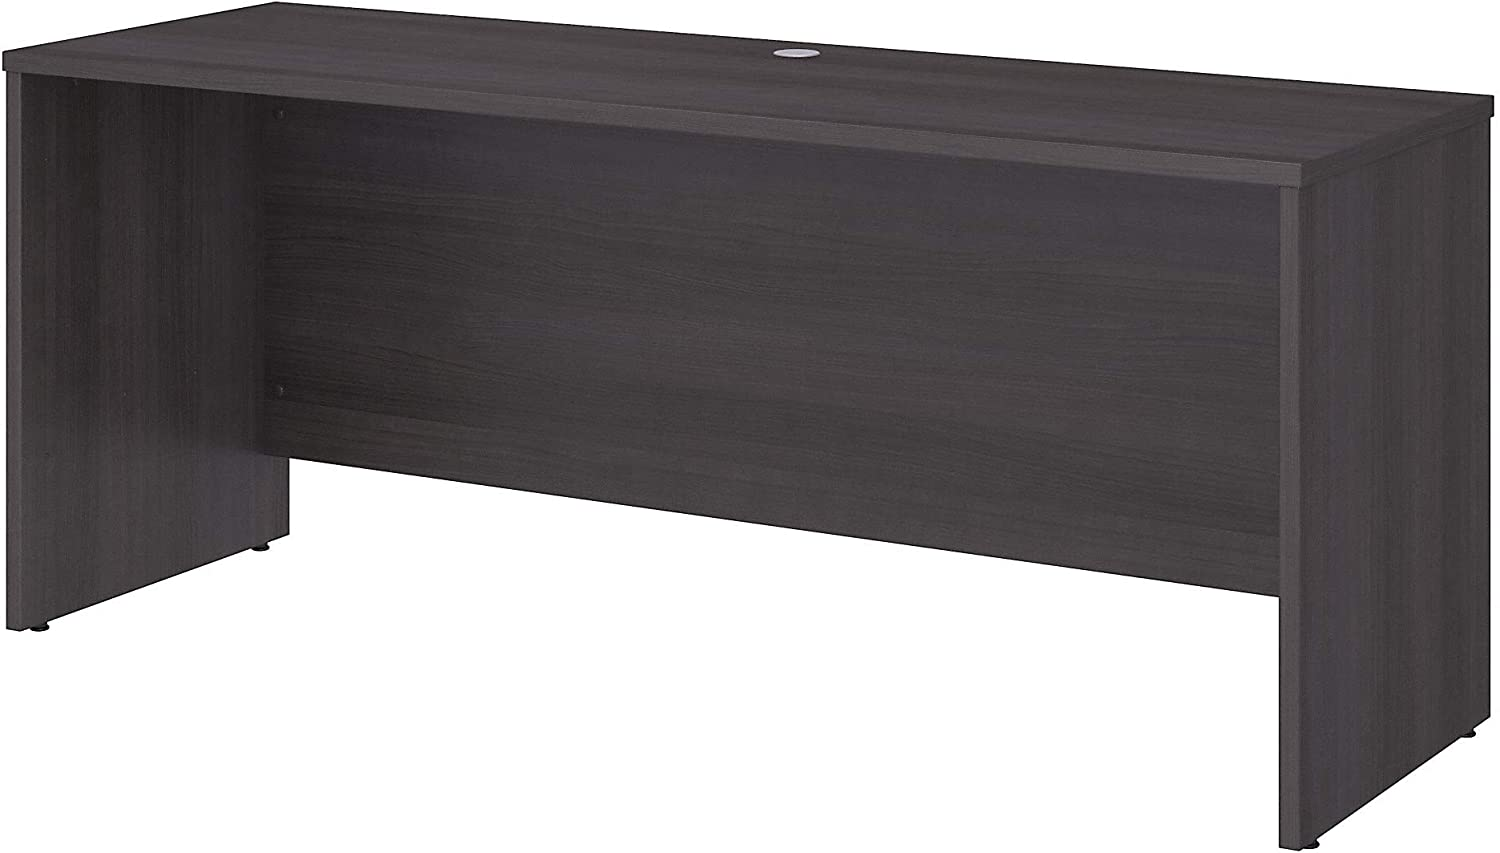 Bush Business Furniture Office 500 L Shaped Executive Desk with Drawers, 72W, Storm Gray